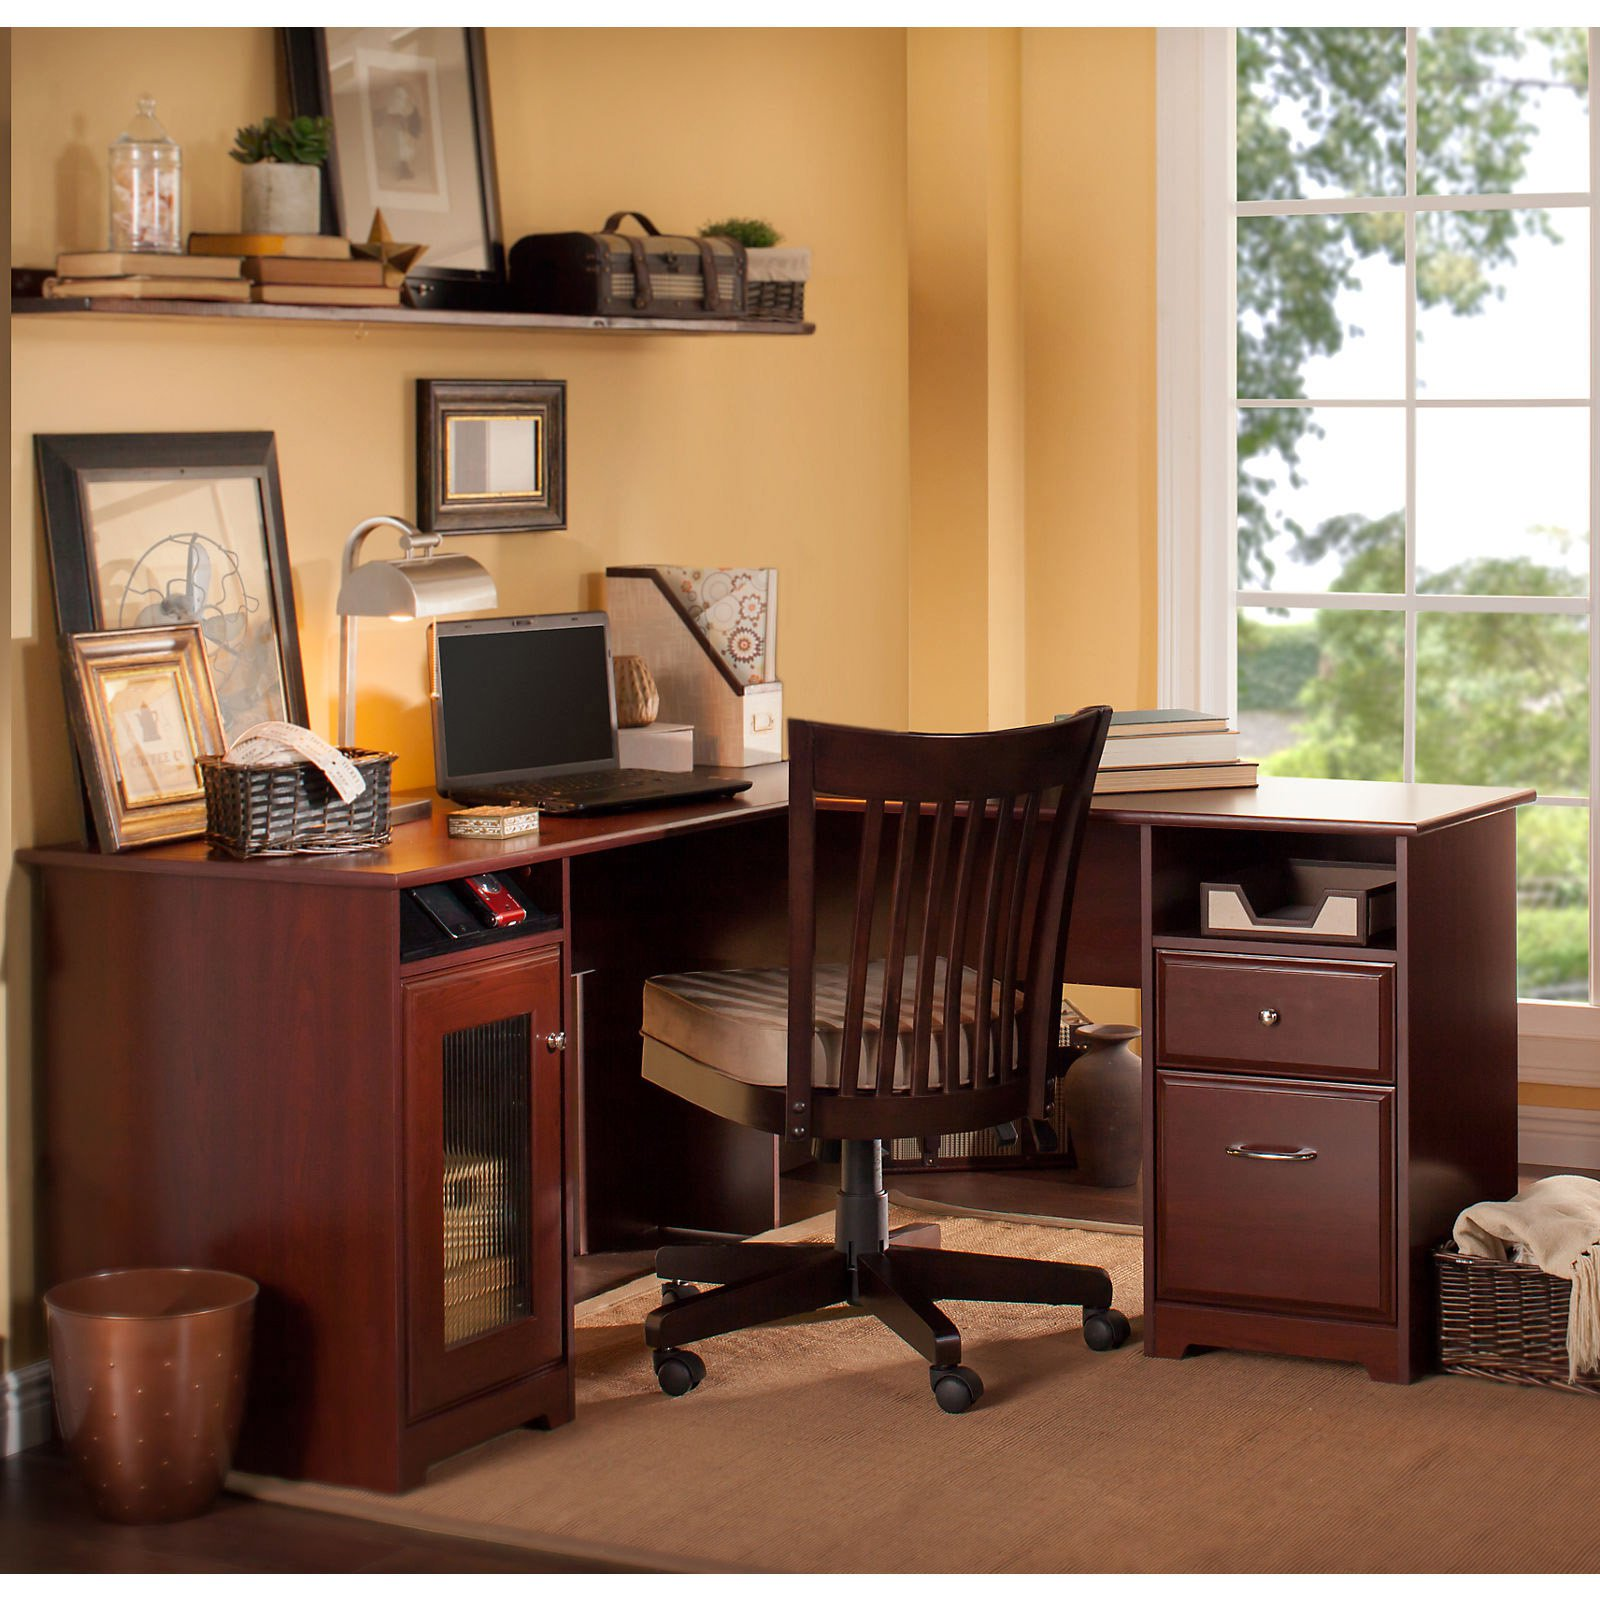 Cabot 60 in. L-Shaped Desk - Harvest Cherry